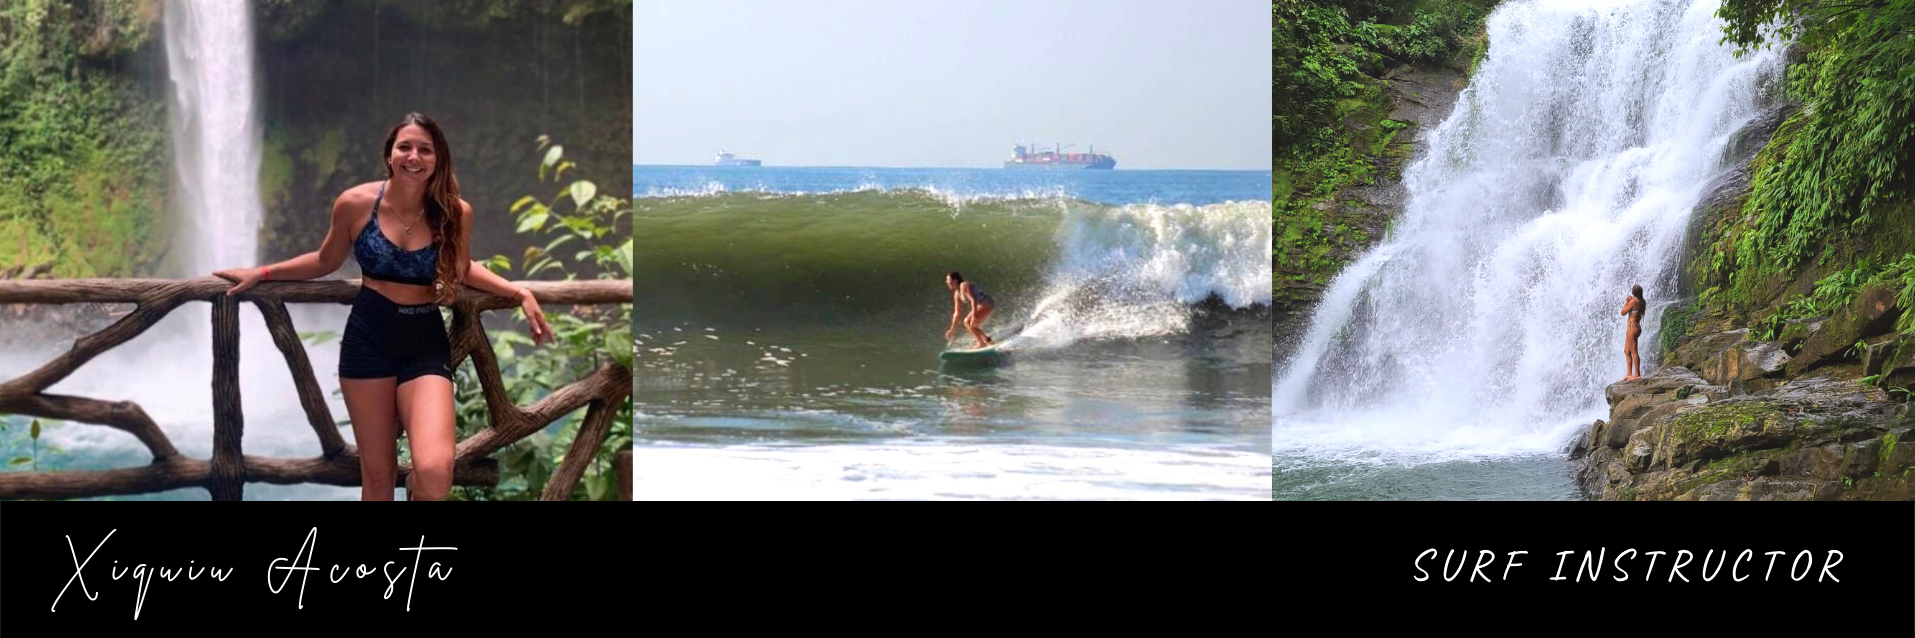 Xiquiu Surf With Amigas